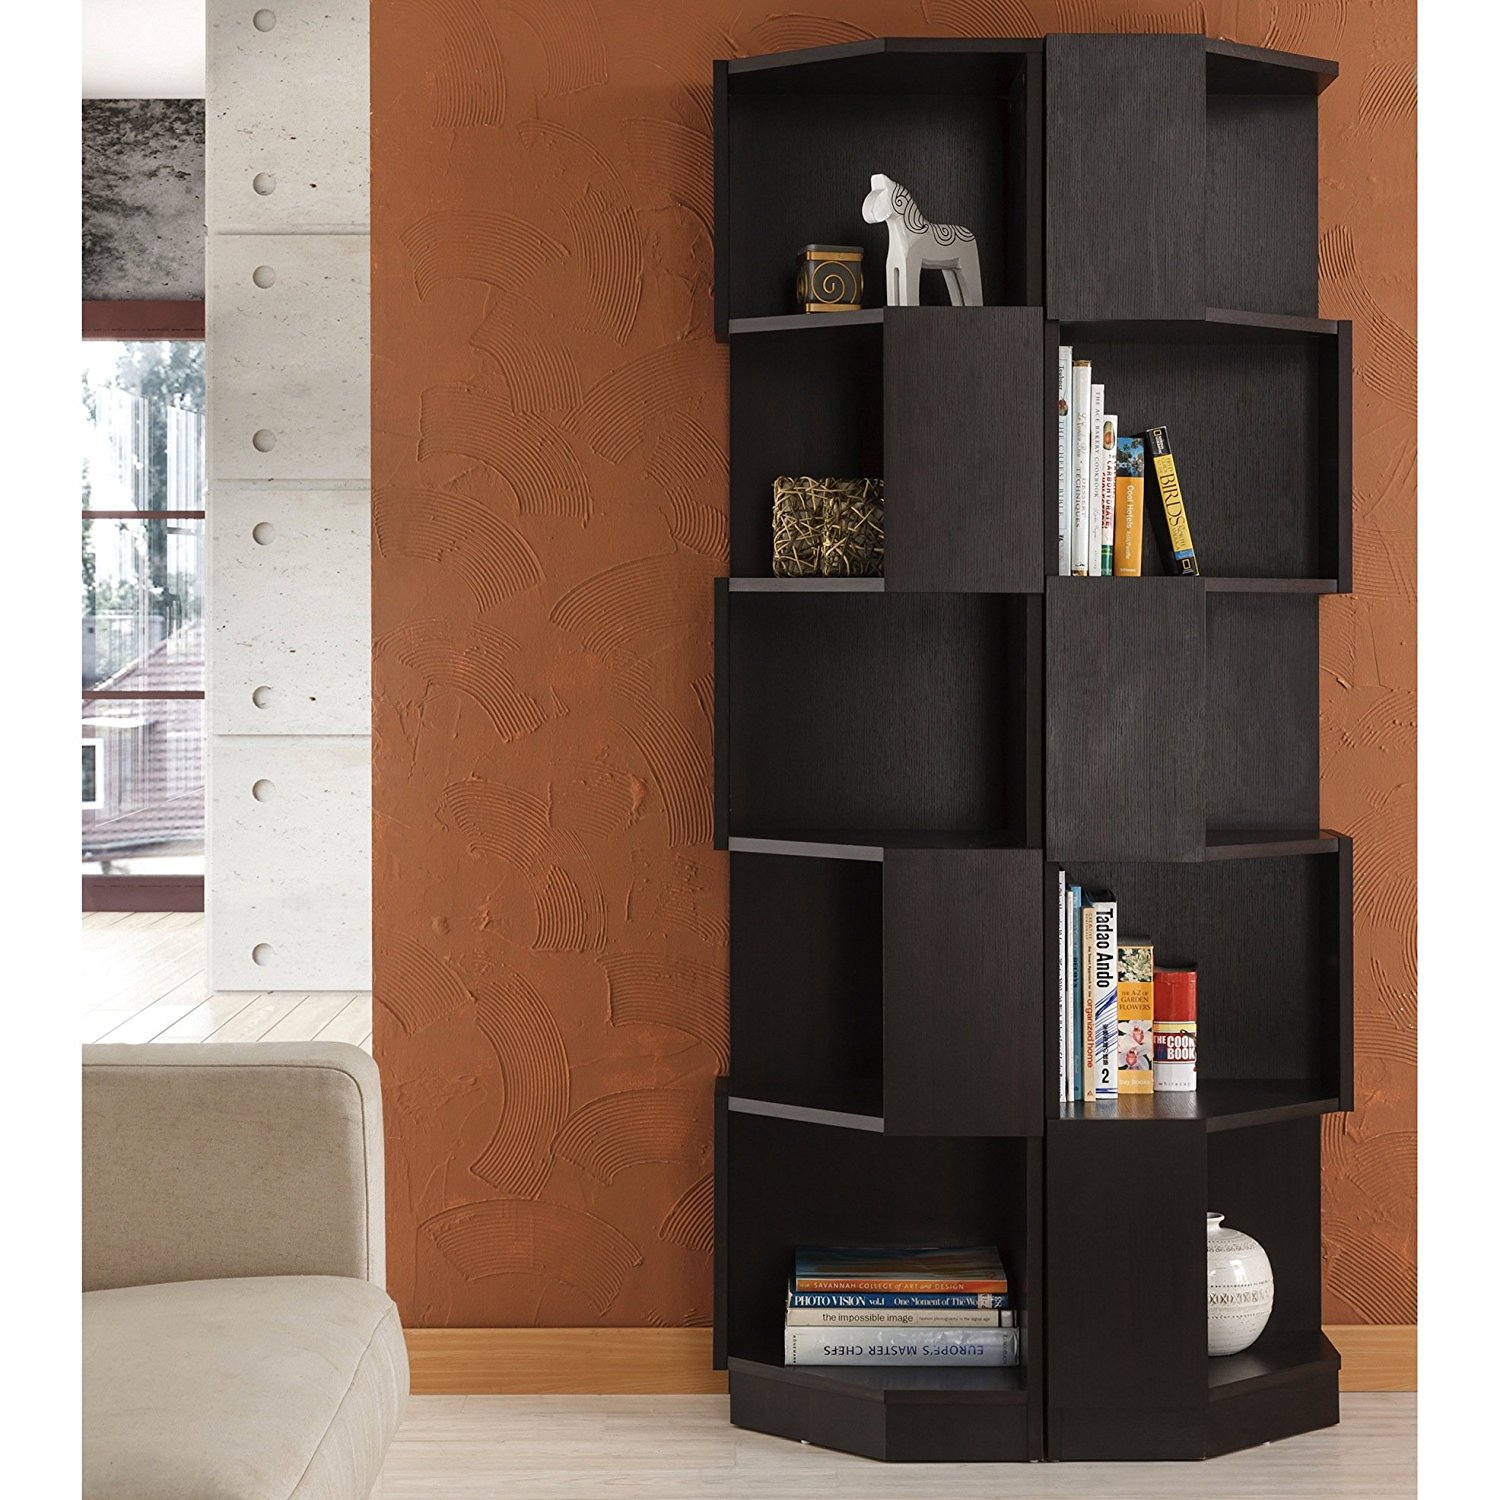 Furniture of America Austin Contoured Contemporary Wood Bookcase/ Display Stand